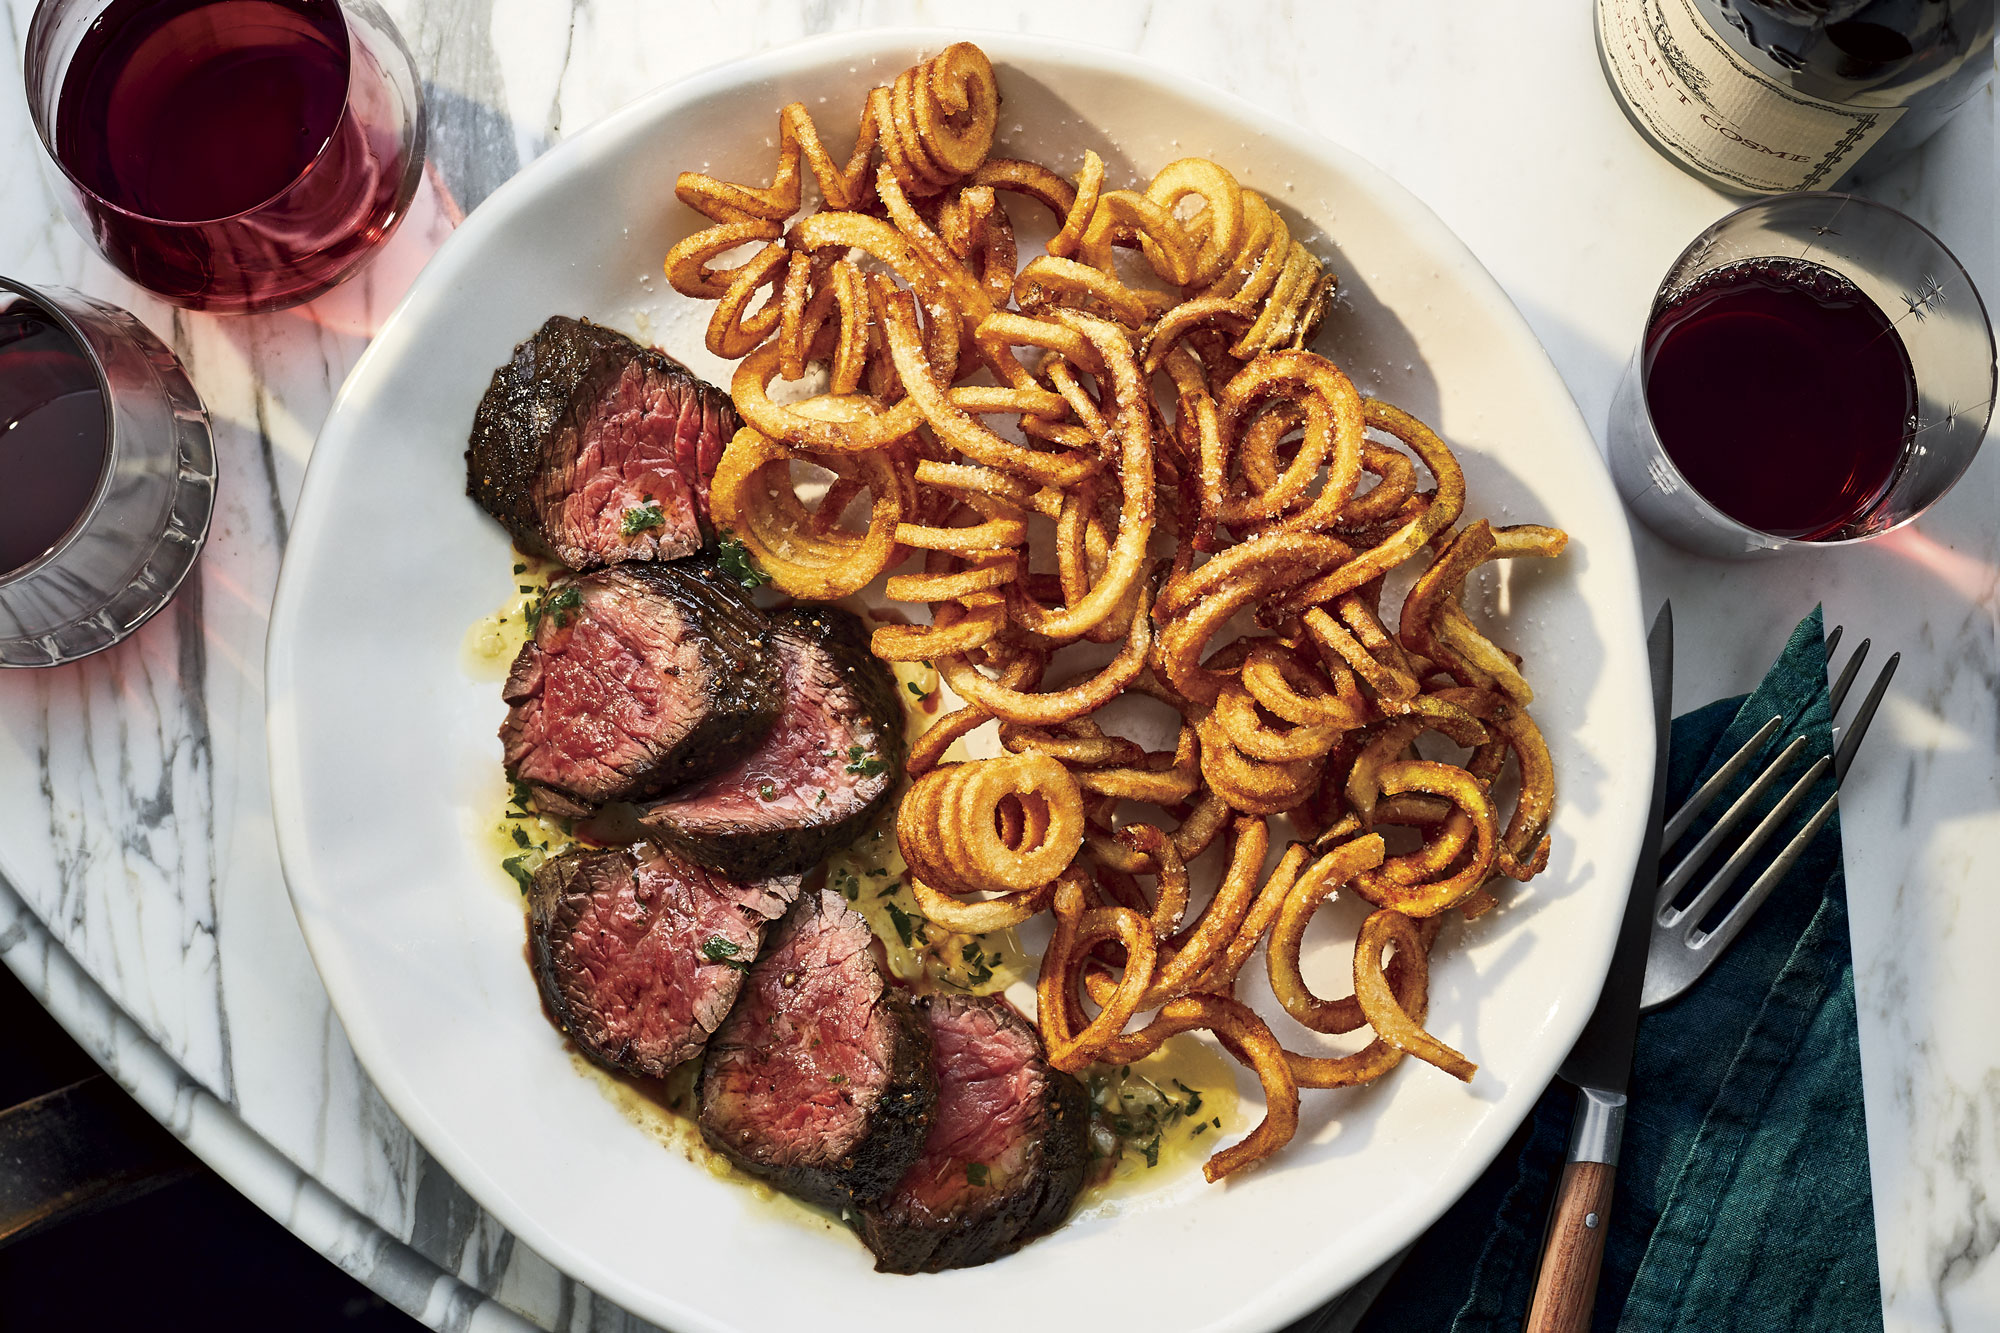 Steak Frites with Red Wine